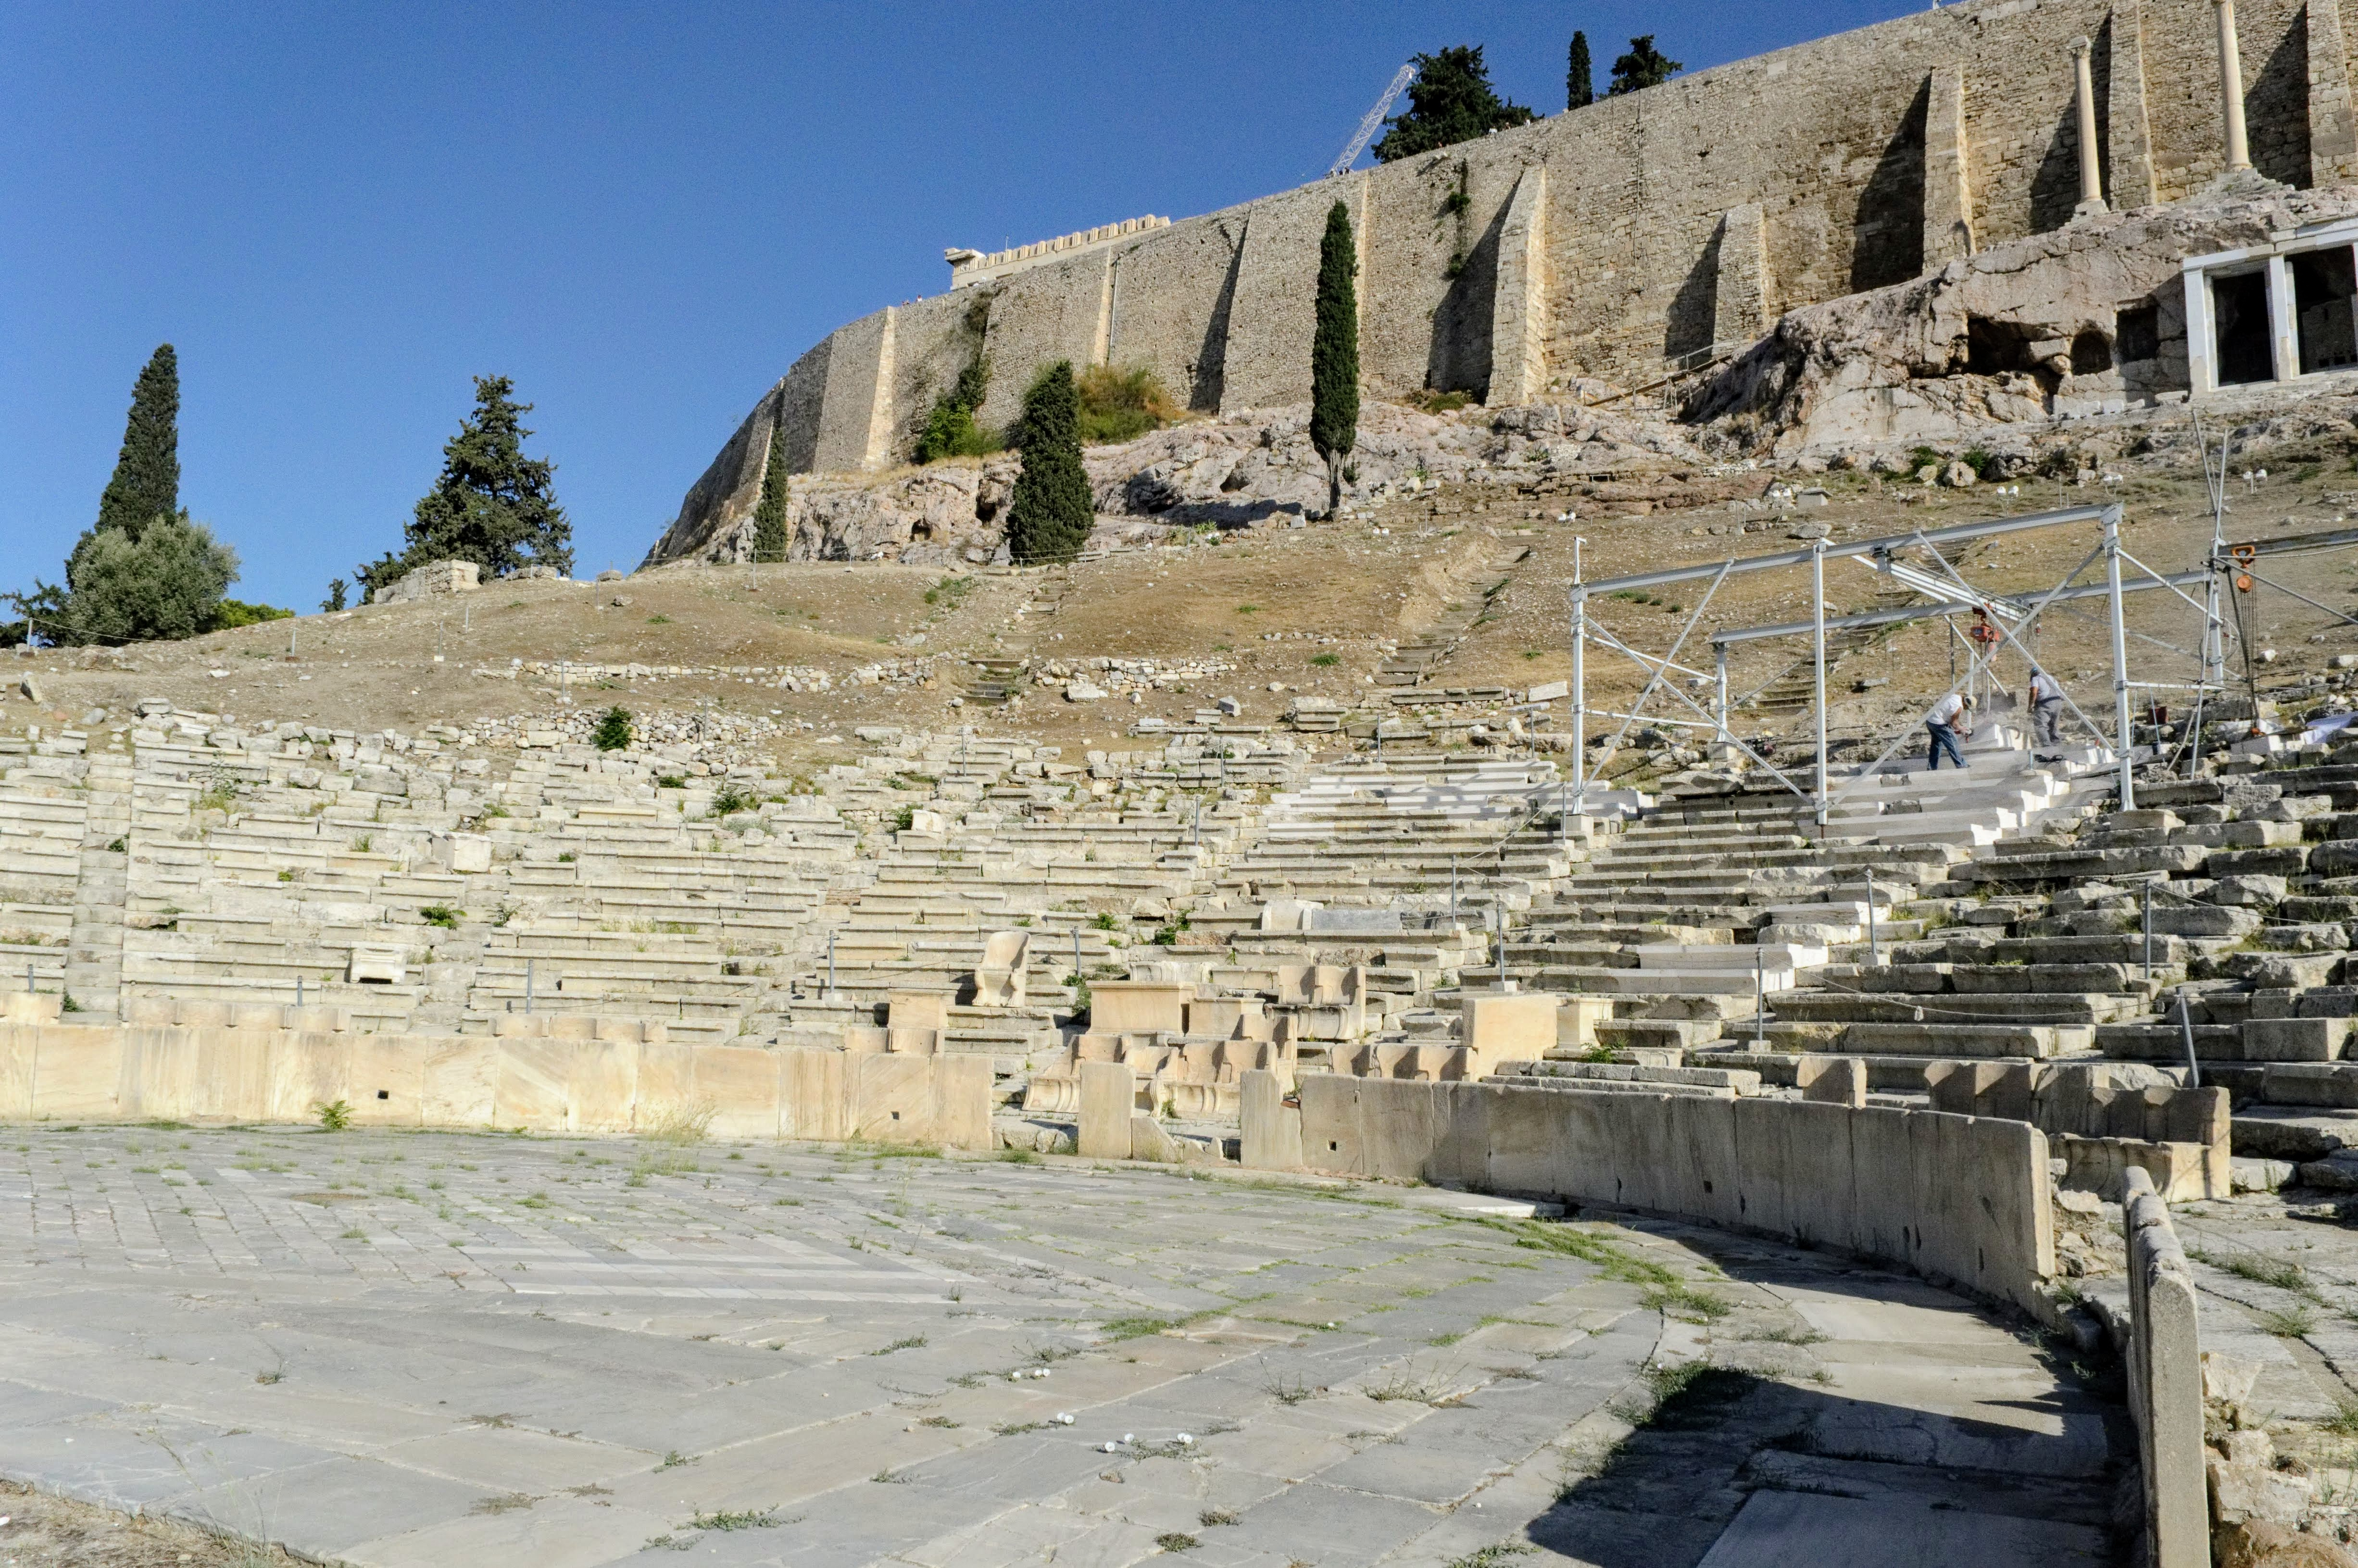 Theatre of Dionysus - Athens, Greece, Europe - Honeymoon Part 1 - Athens is a beautiful capital city rich with history. With it's impressive Acropolis and quaint pedestrian streets, we headed here for our Honeymoon Part 1! Veritru Travel Blog